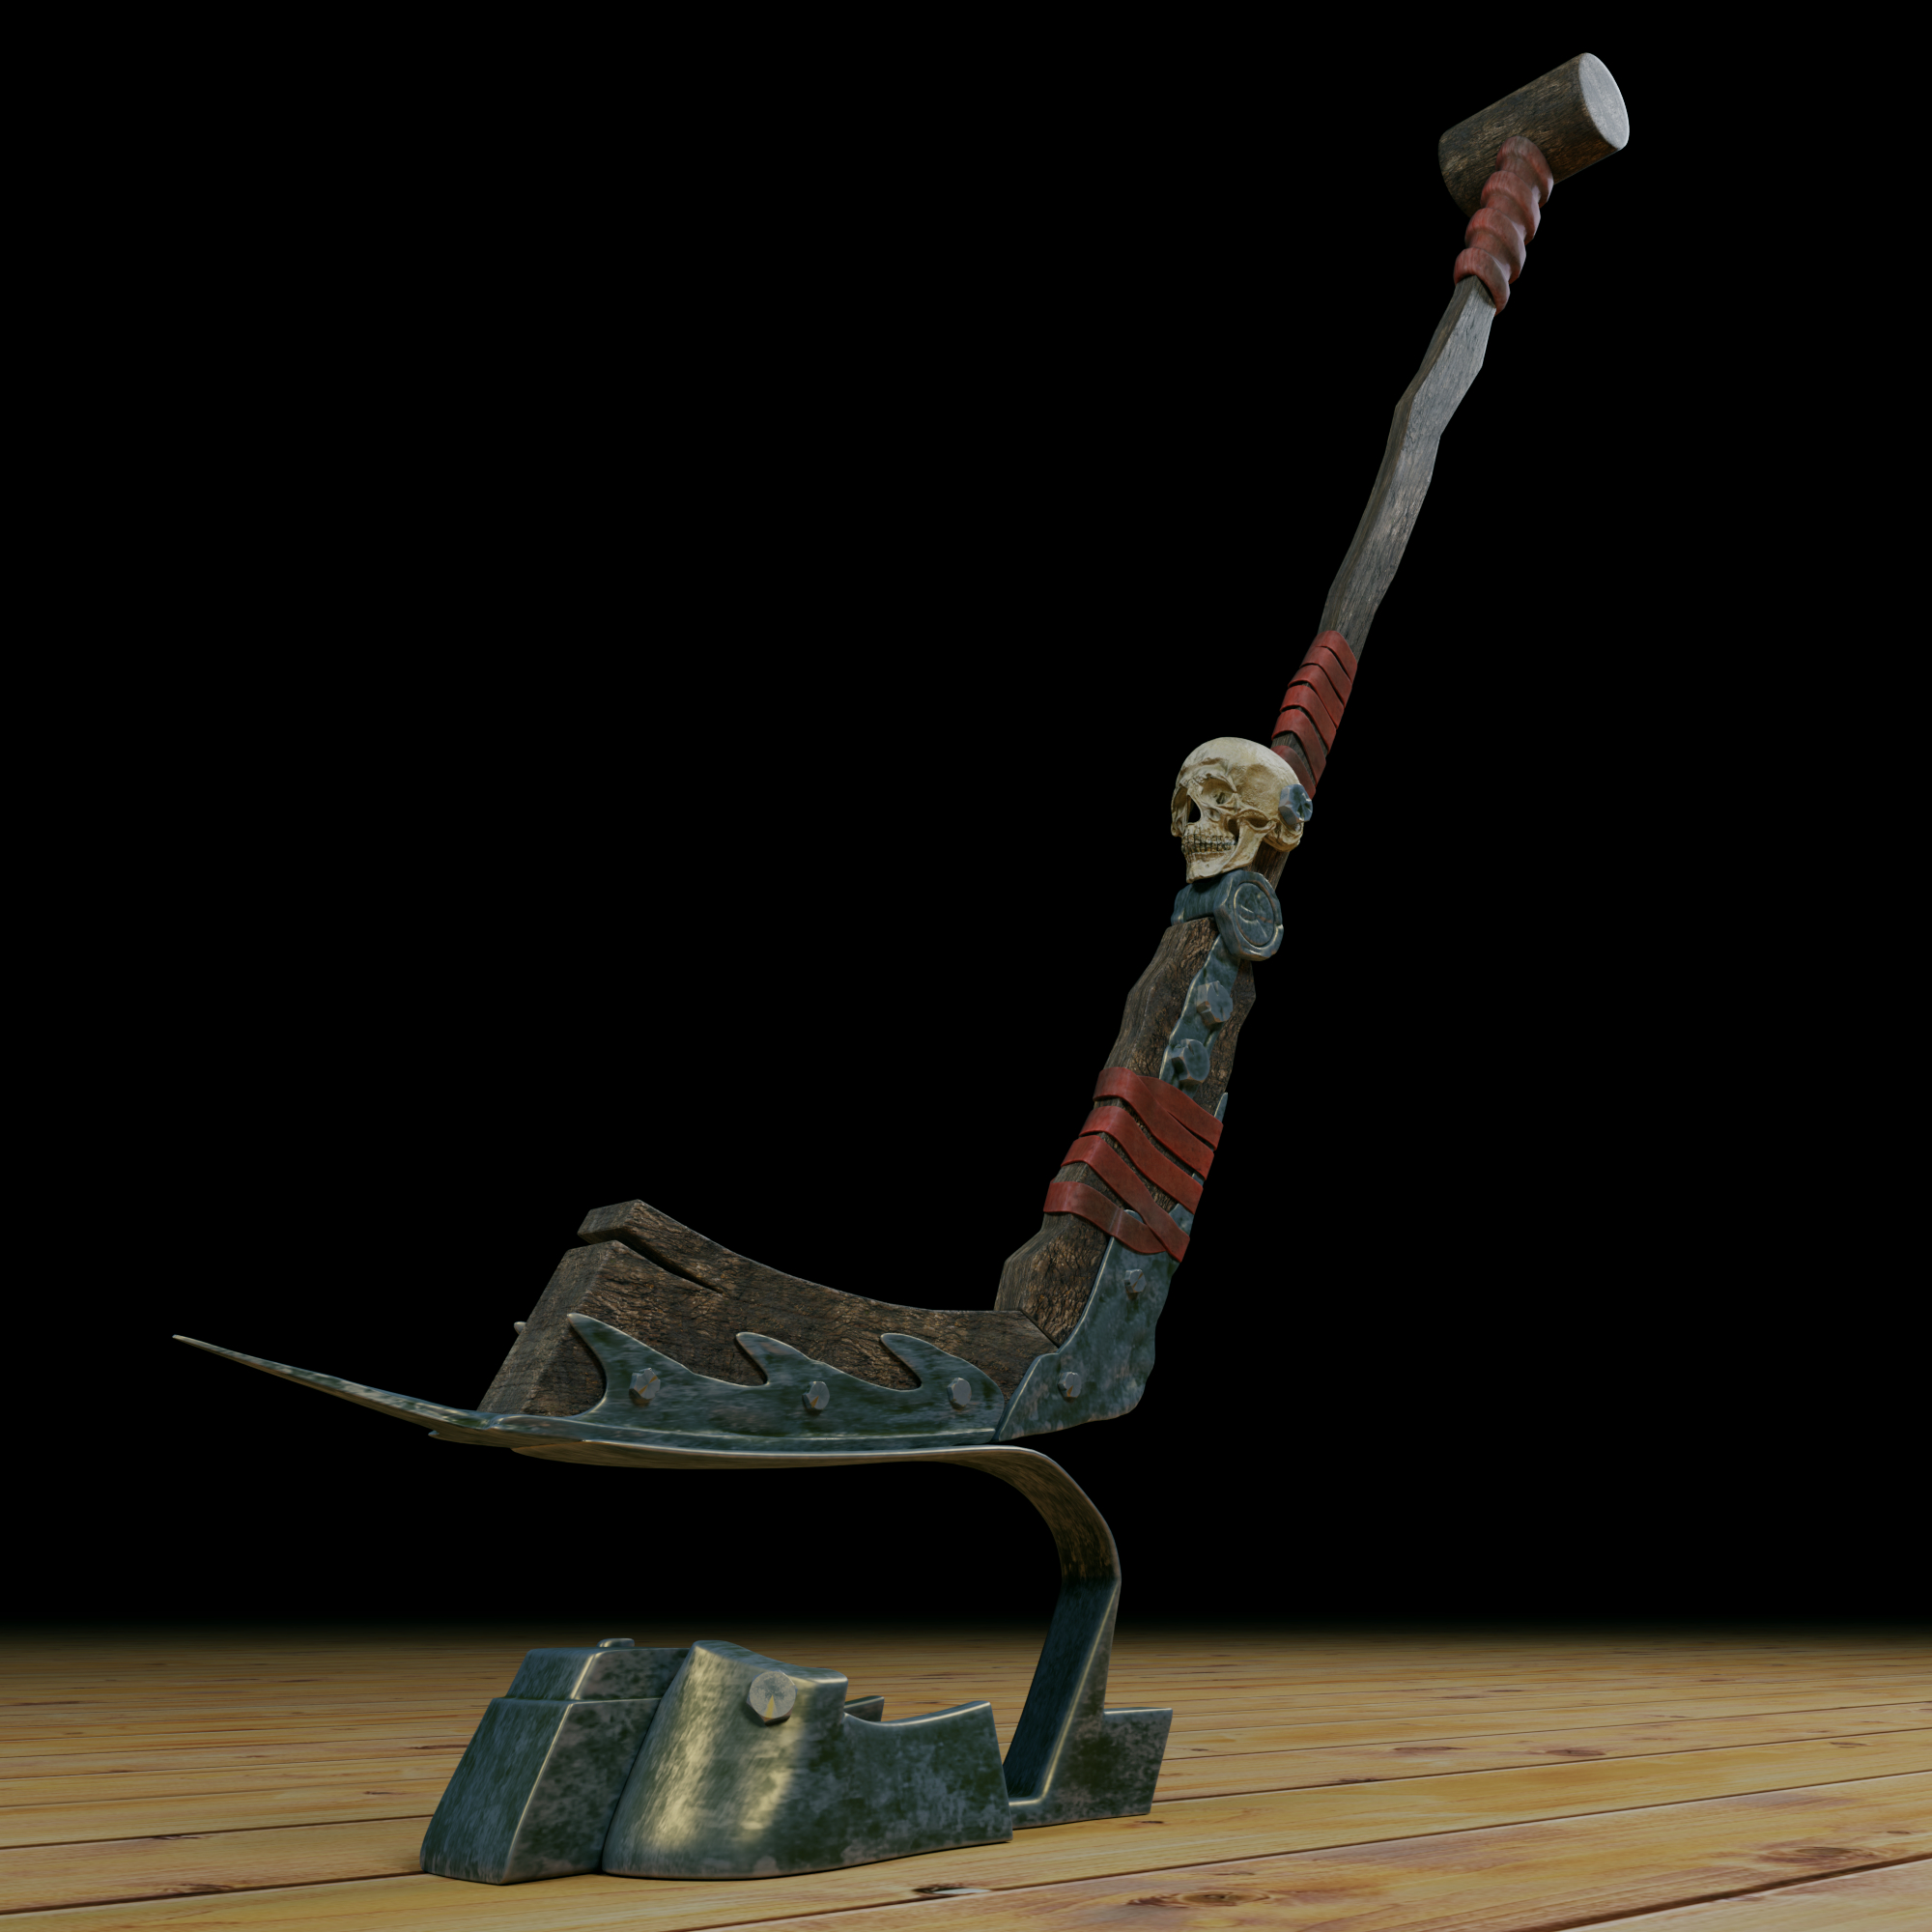 hockey stick in Blender cycles render image